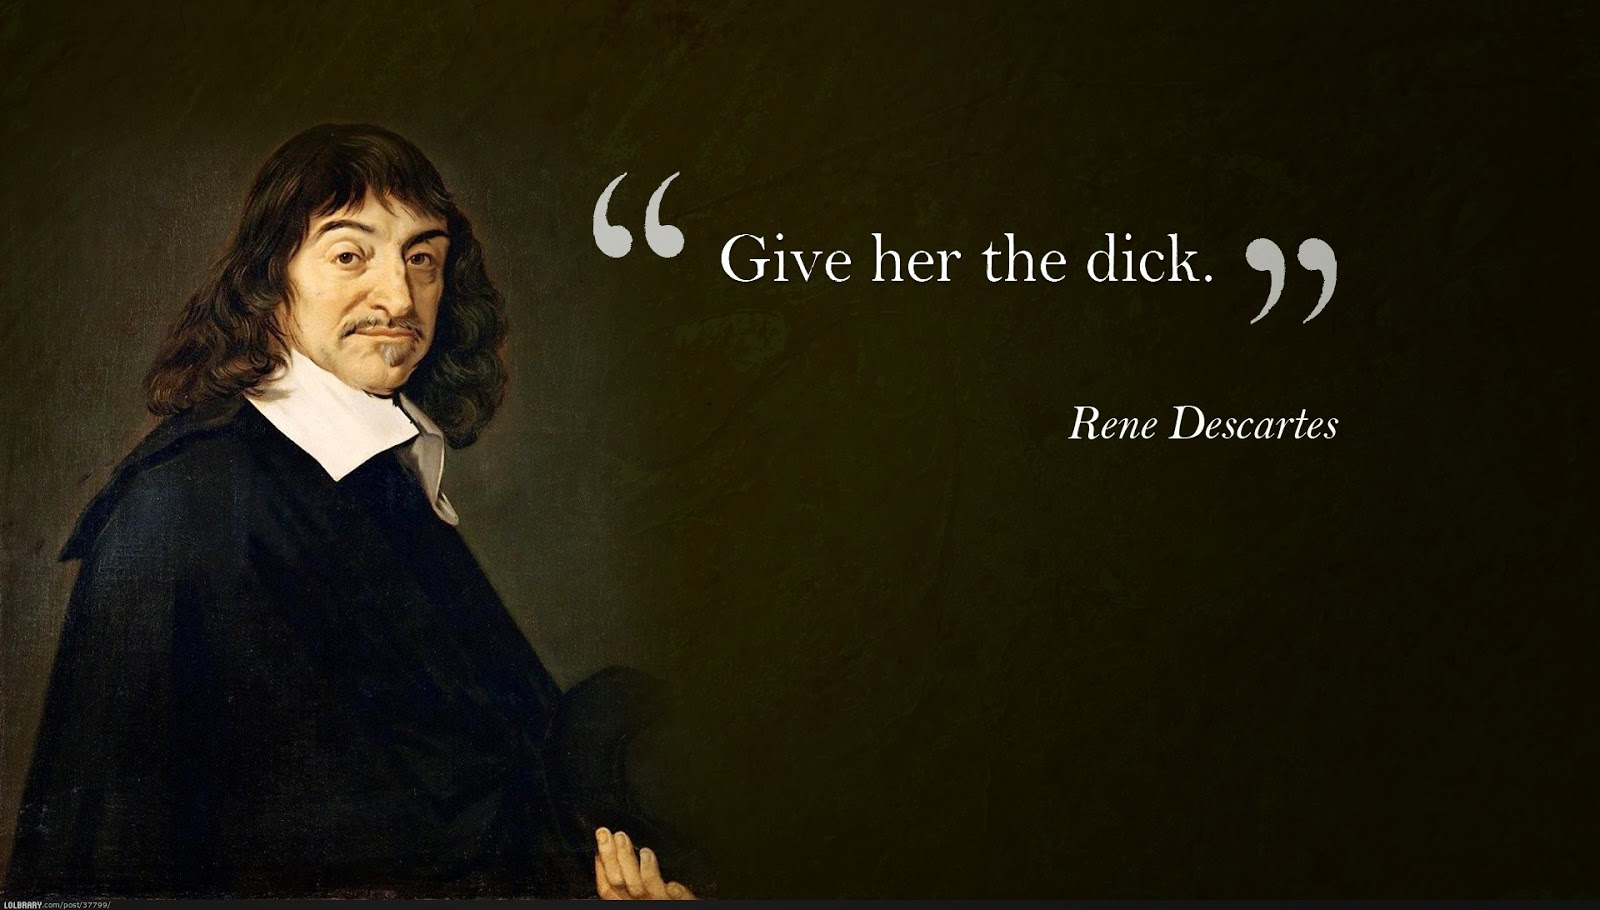 Give her the dick. Rene Descartes